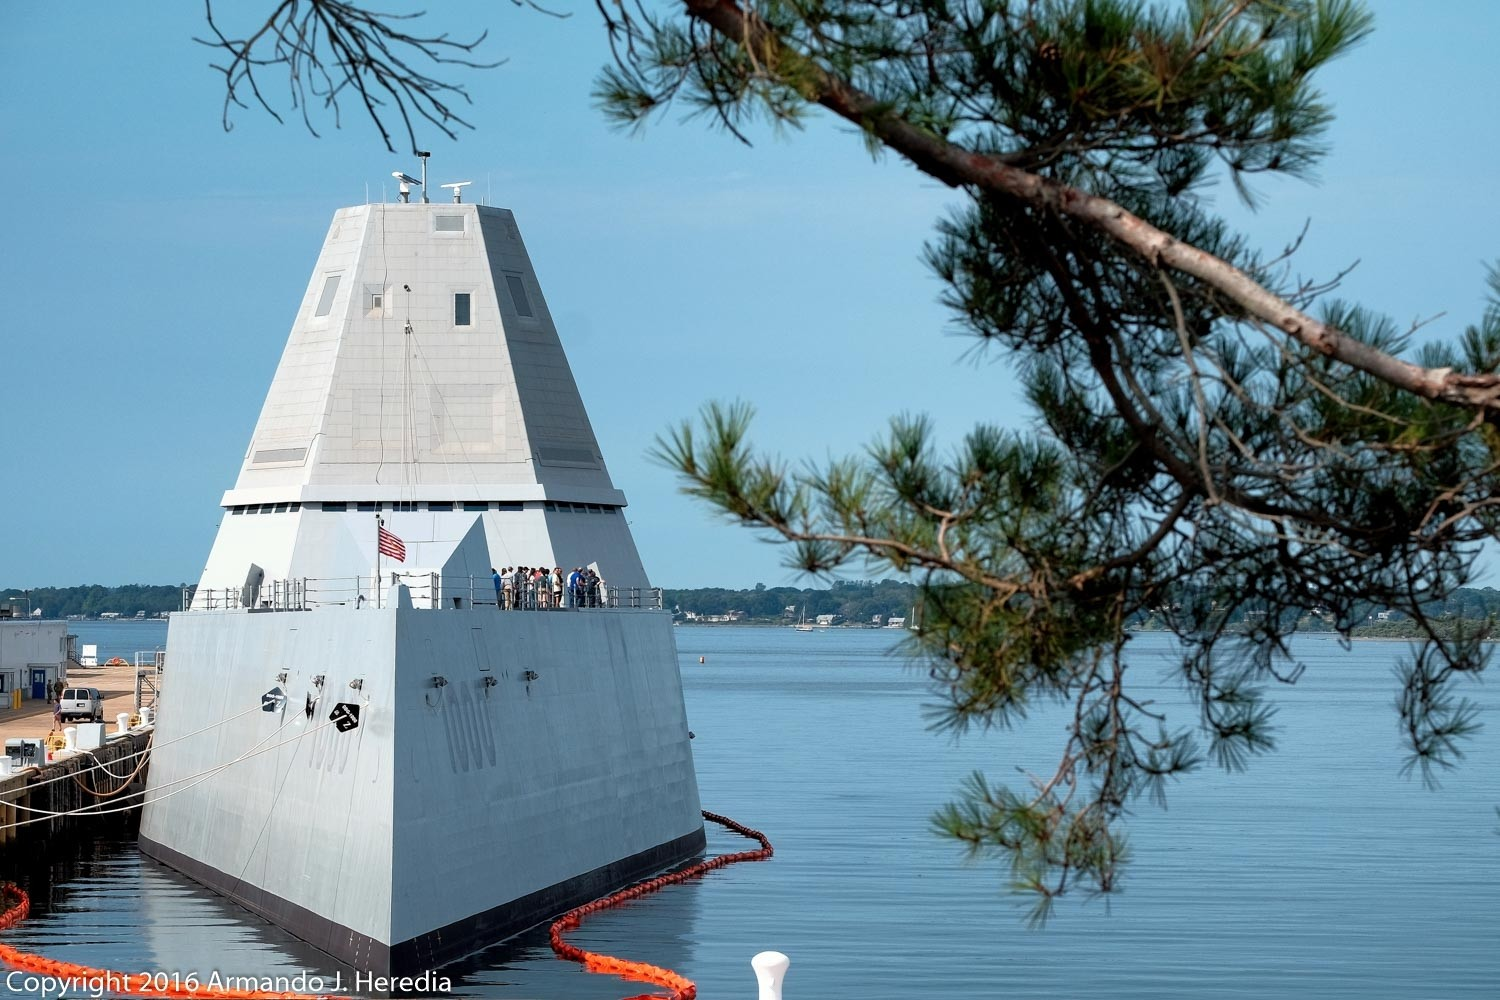 USSZUMWALT-09-16-004-Edit-WEB.jpg